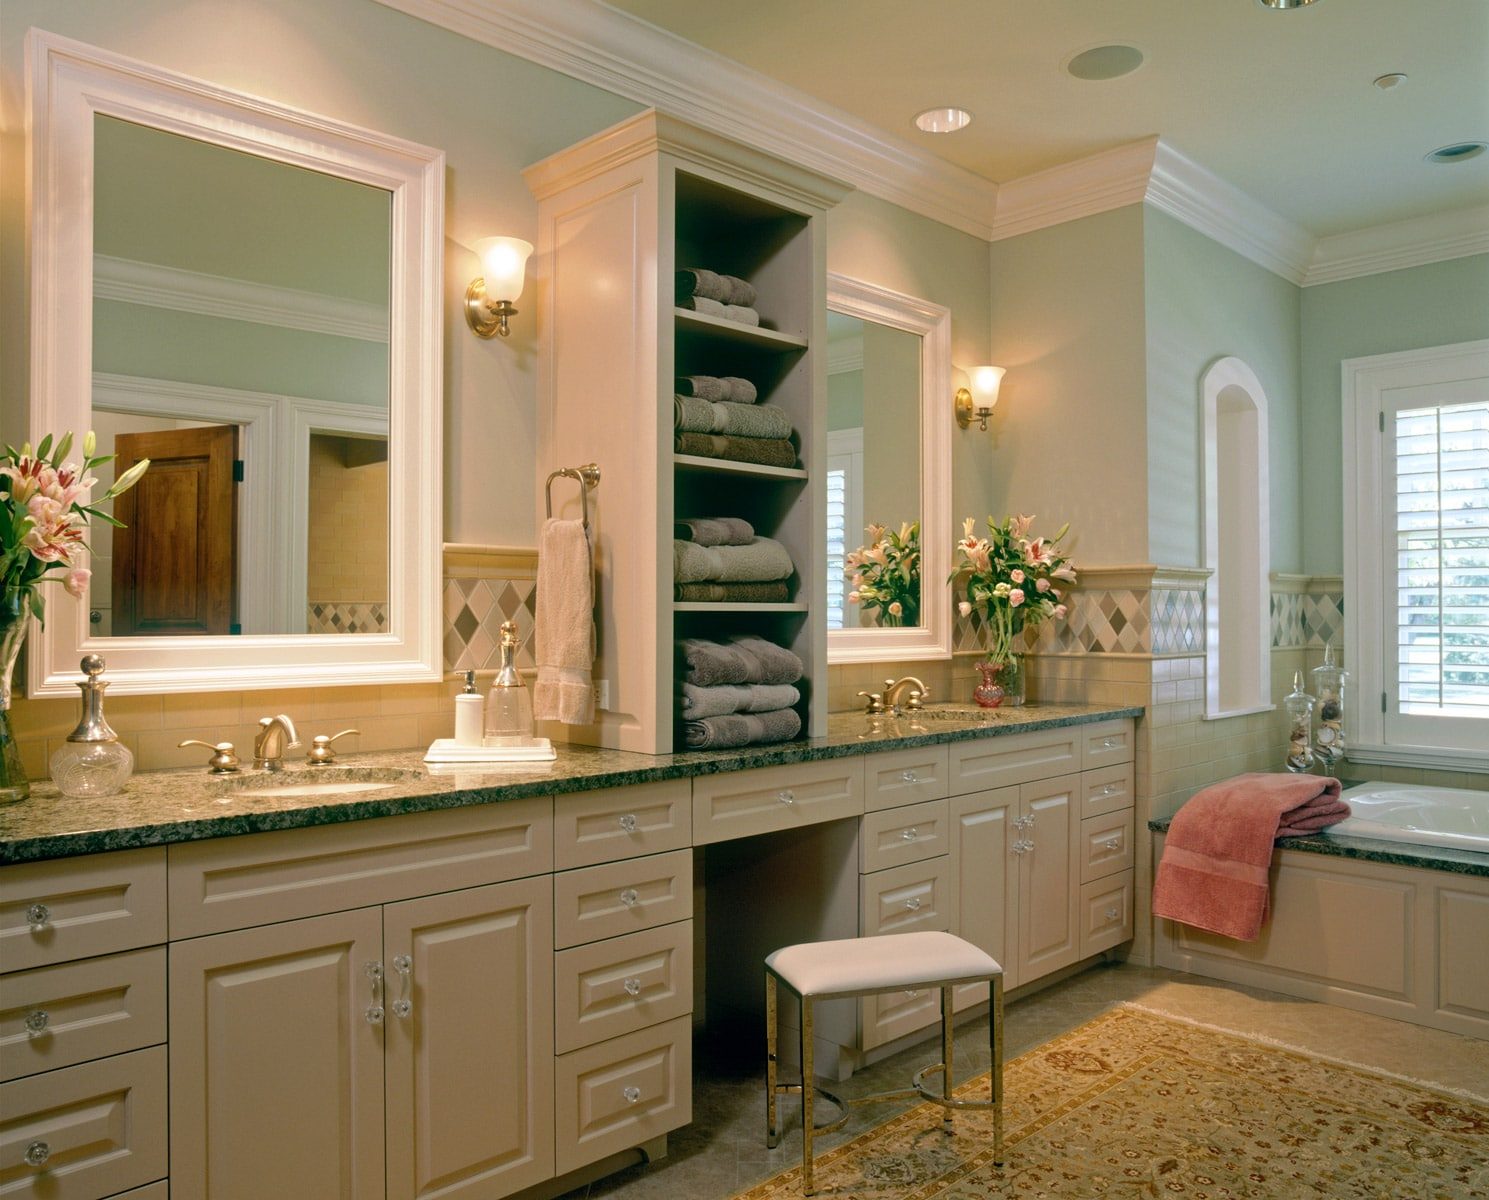 Private-Estate-Master-Bath-Minneapolis-interior-designer.jpeg